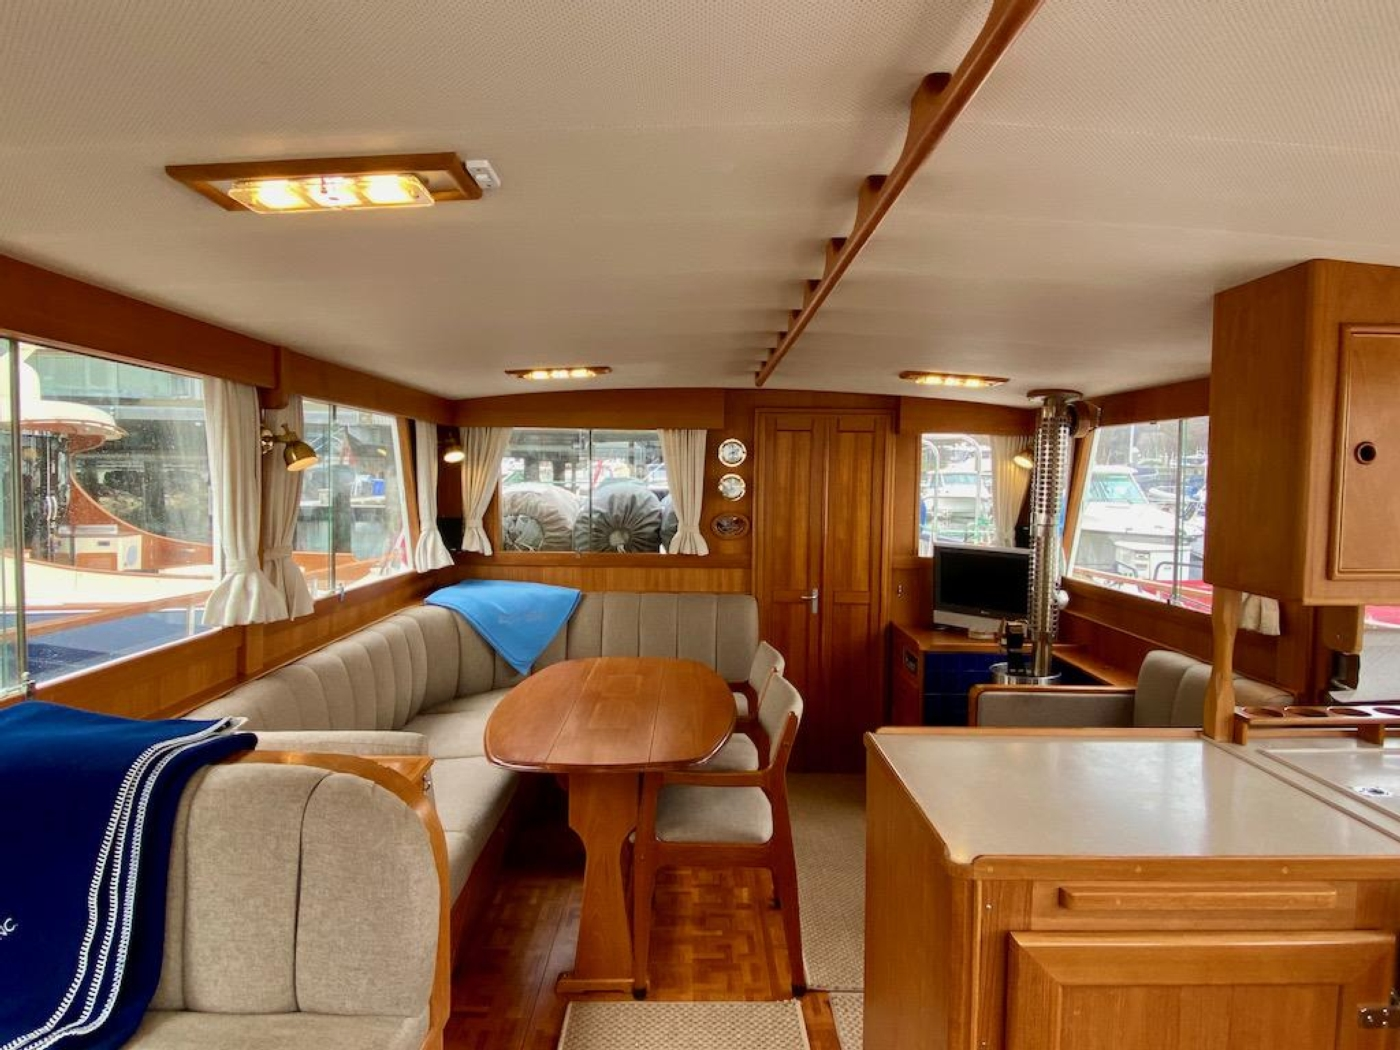 1998 Grand Banks 42 Classic, Salon looking aft